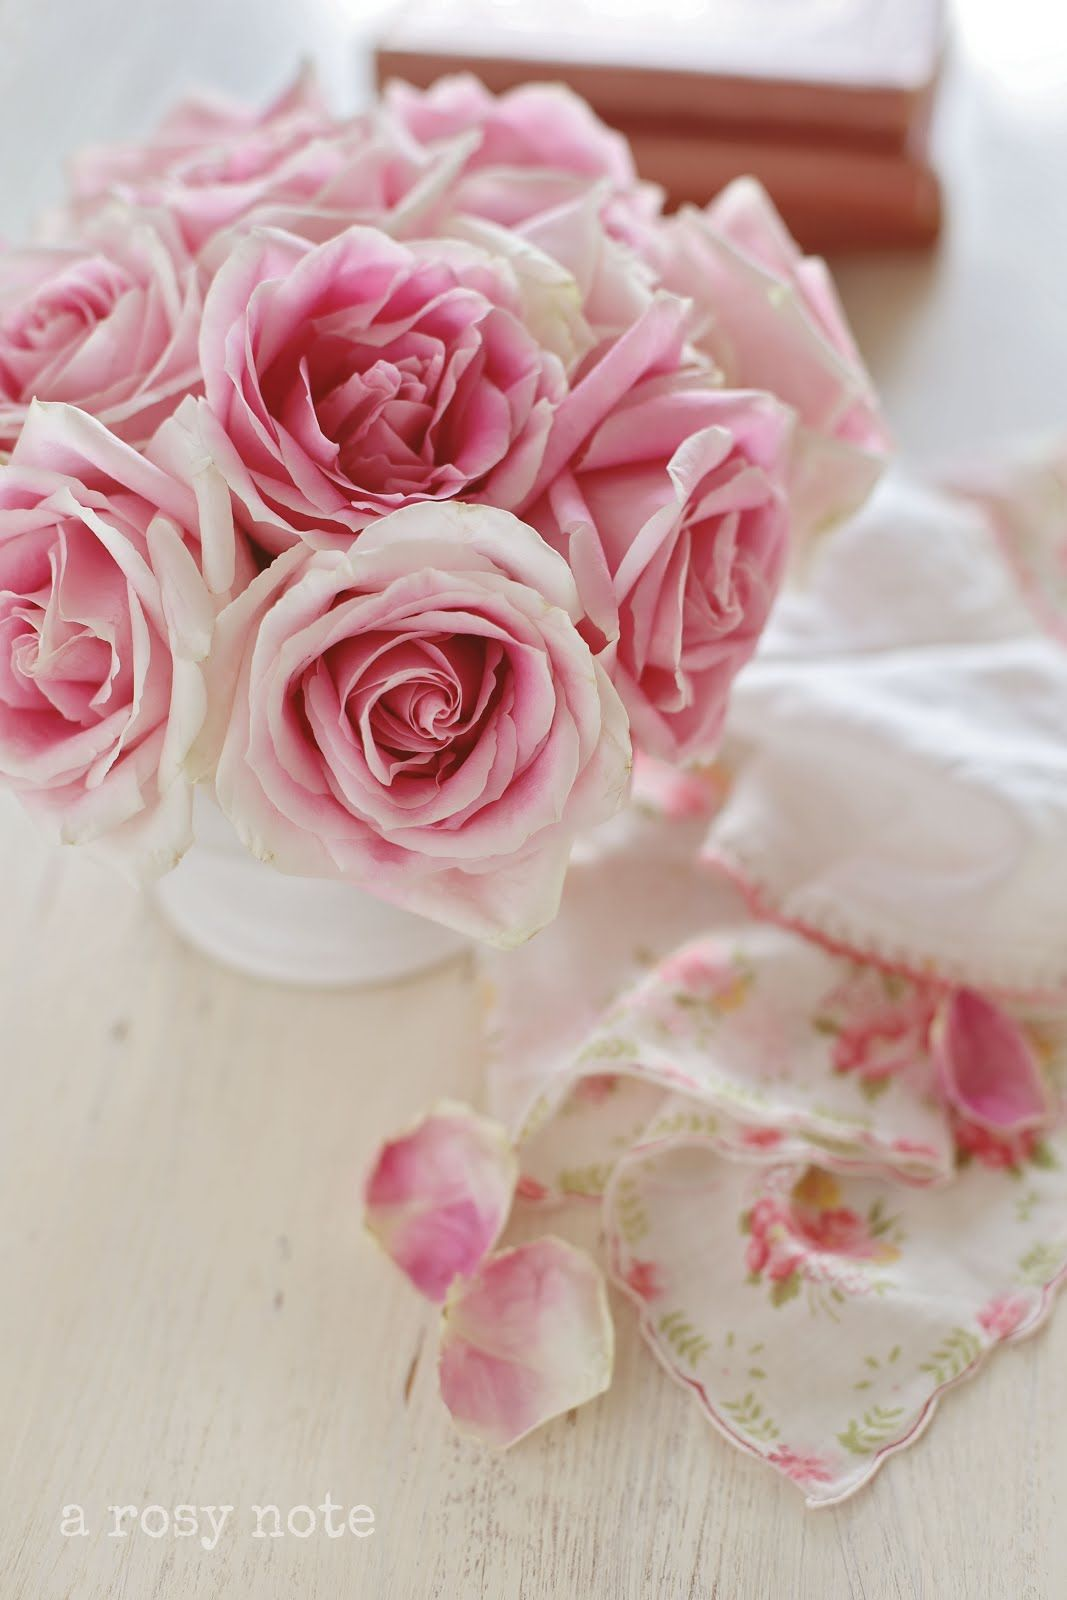 A rosy note i love roses roses roses pinterest flowers rose a rosy note beautiful rosesromantic flowerspink izmirmasajfo